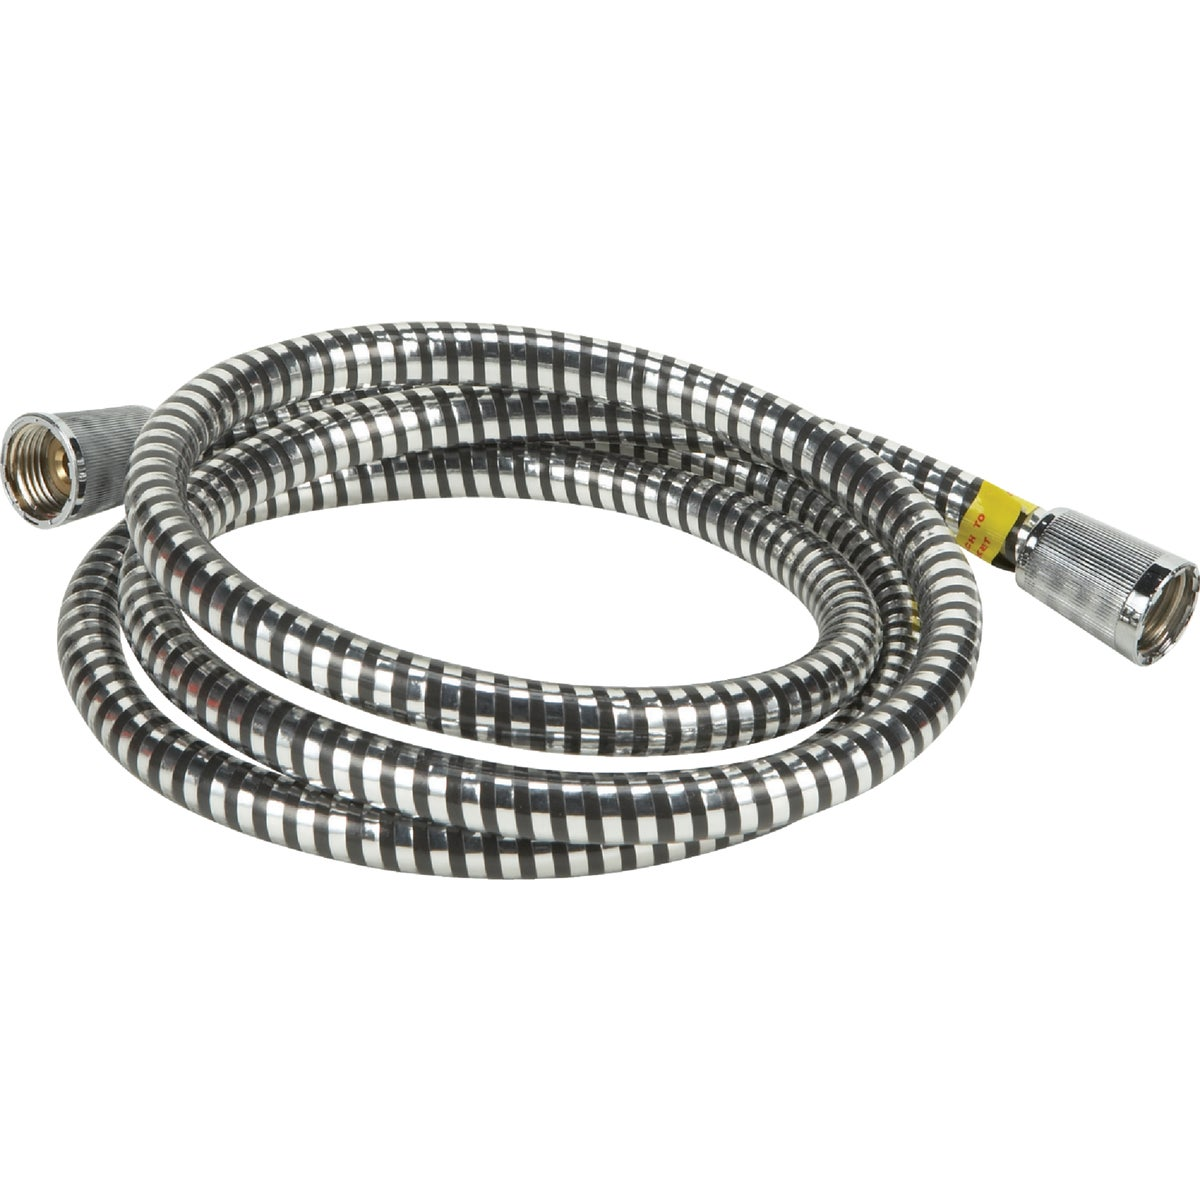 6' MYLAR/CHR SHOWER HOSE - 480444 by Do it Best